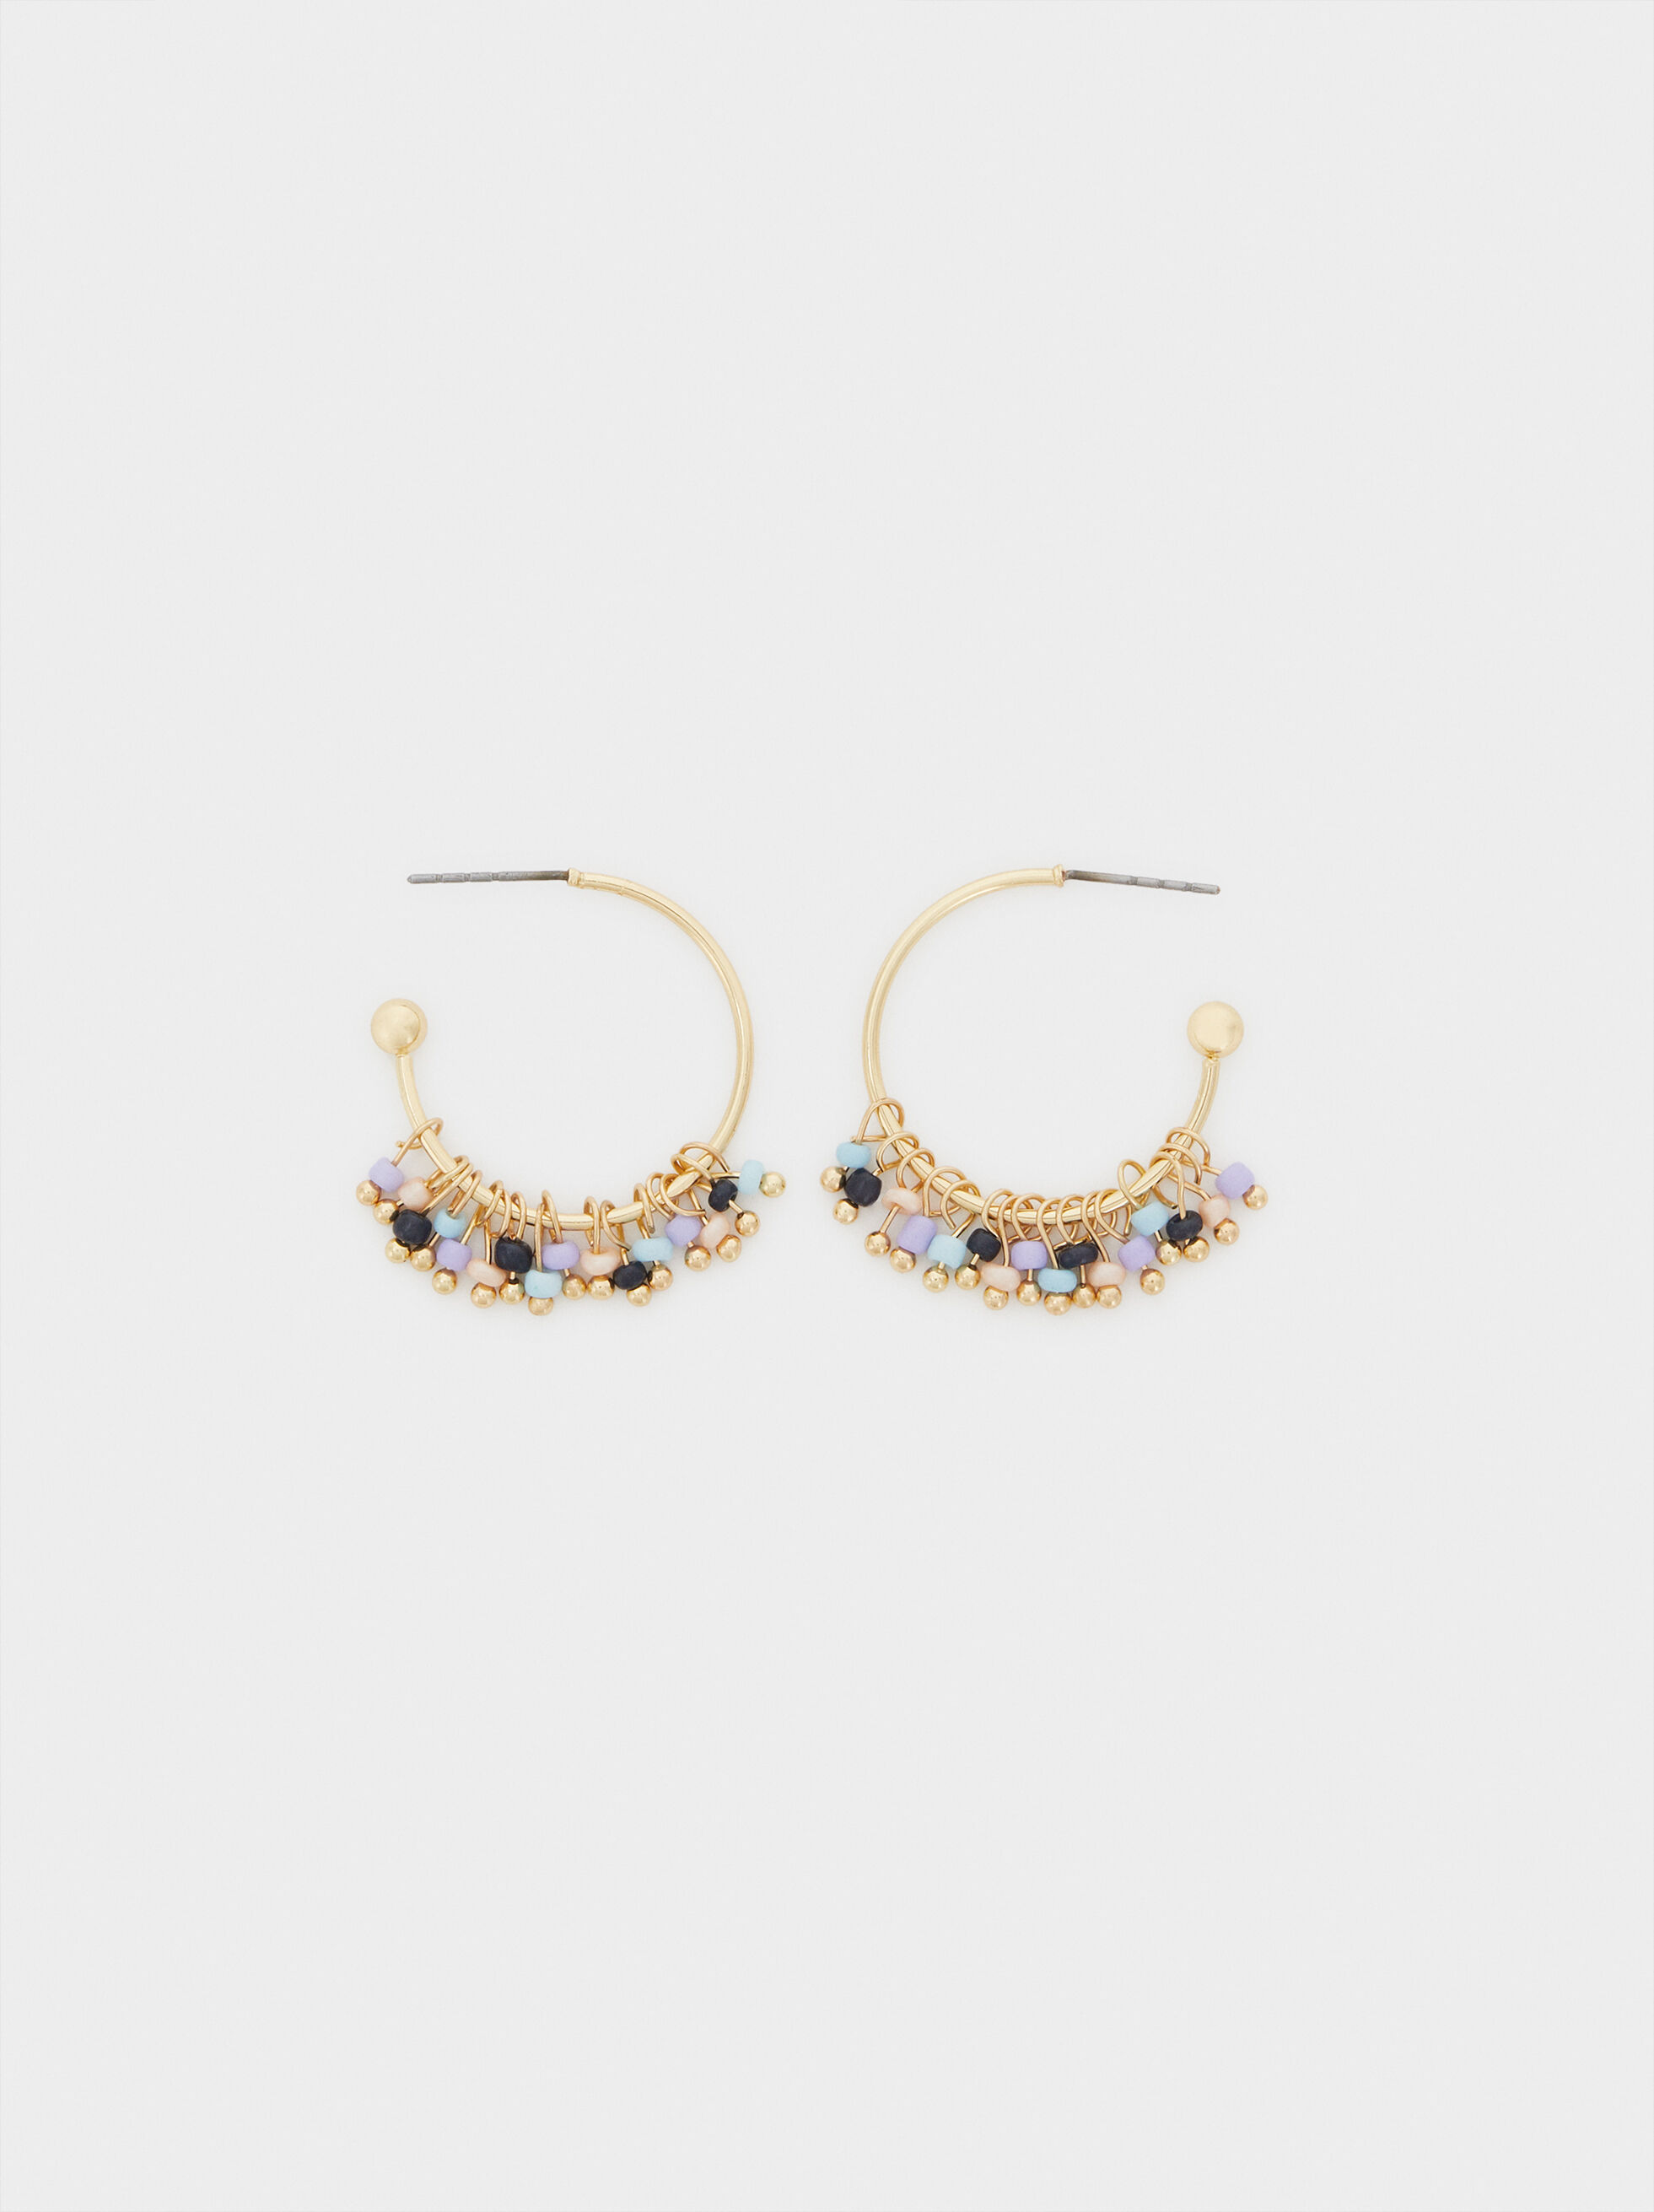 Recife Short Hoop Earrings With Beads, , hi-res